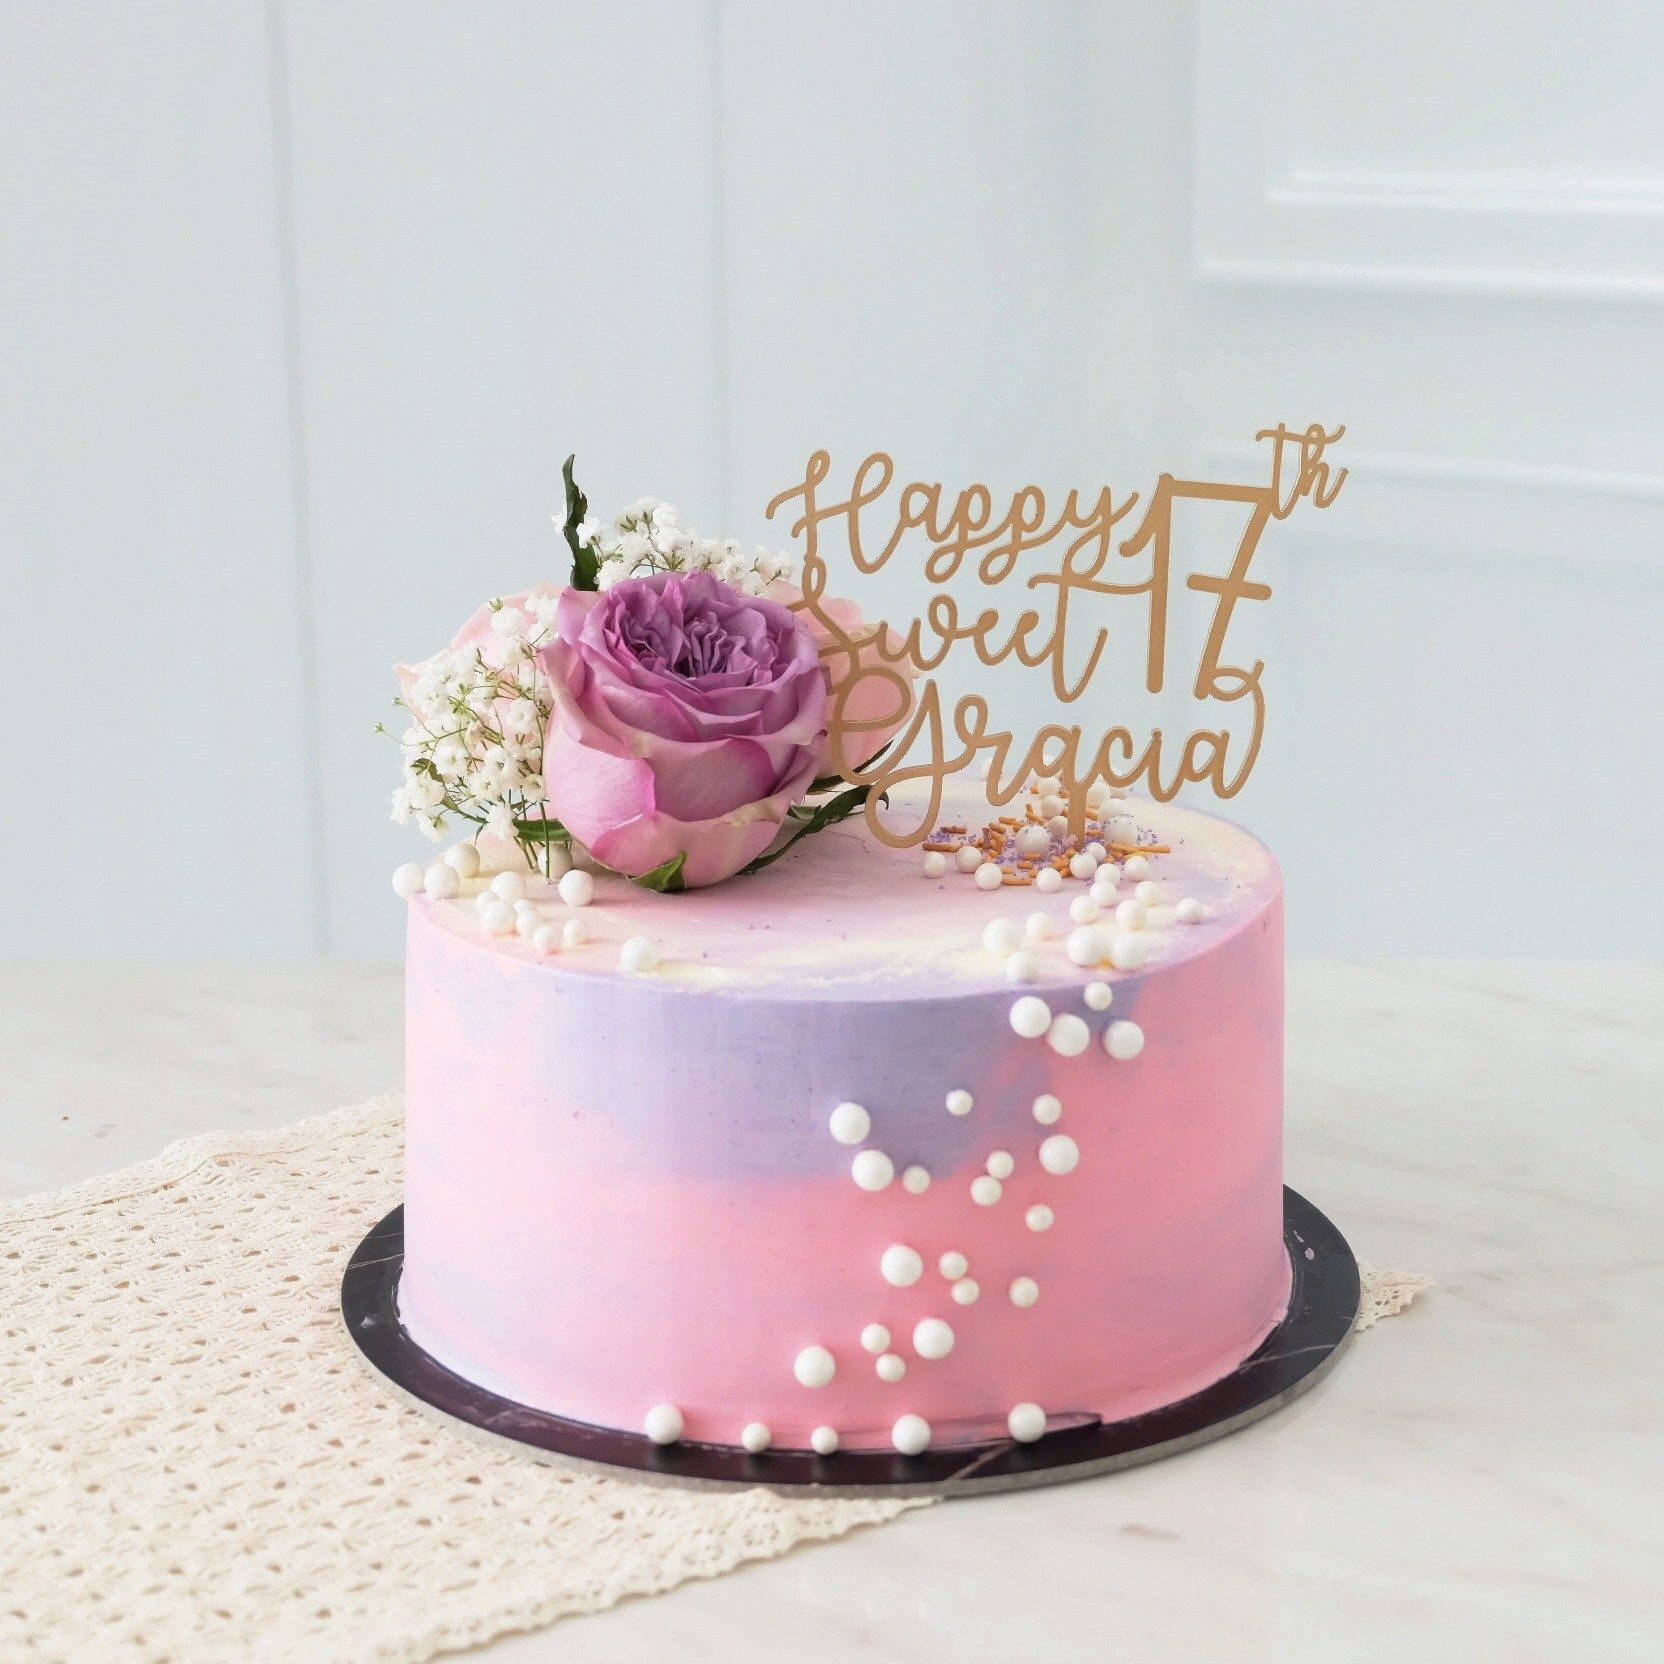 Swell 30 Awesome Image Of Flowers Birthday Cake With Images Funny Birthday Cards Online Alyptdamsfinfo